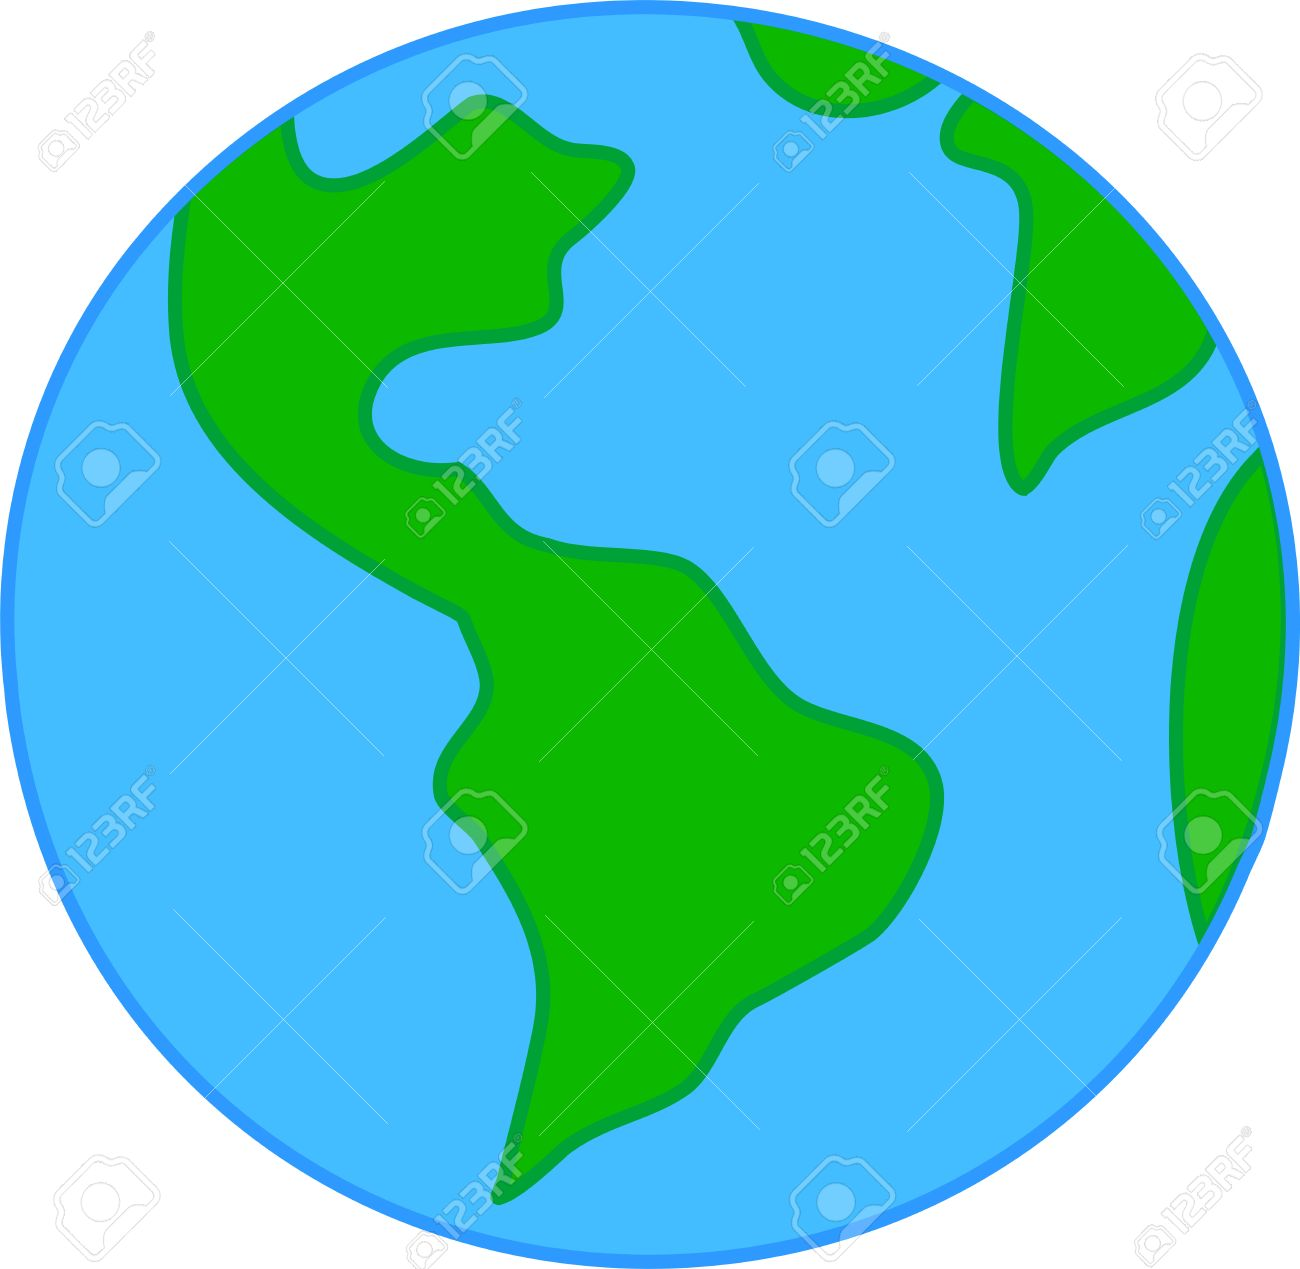 Child Drawing Sketch Of Planet Earth Royalty Free Cliparts Vectors